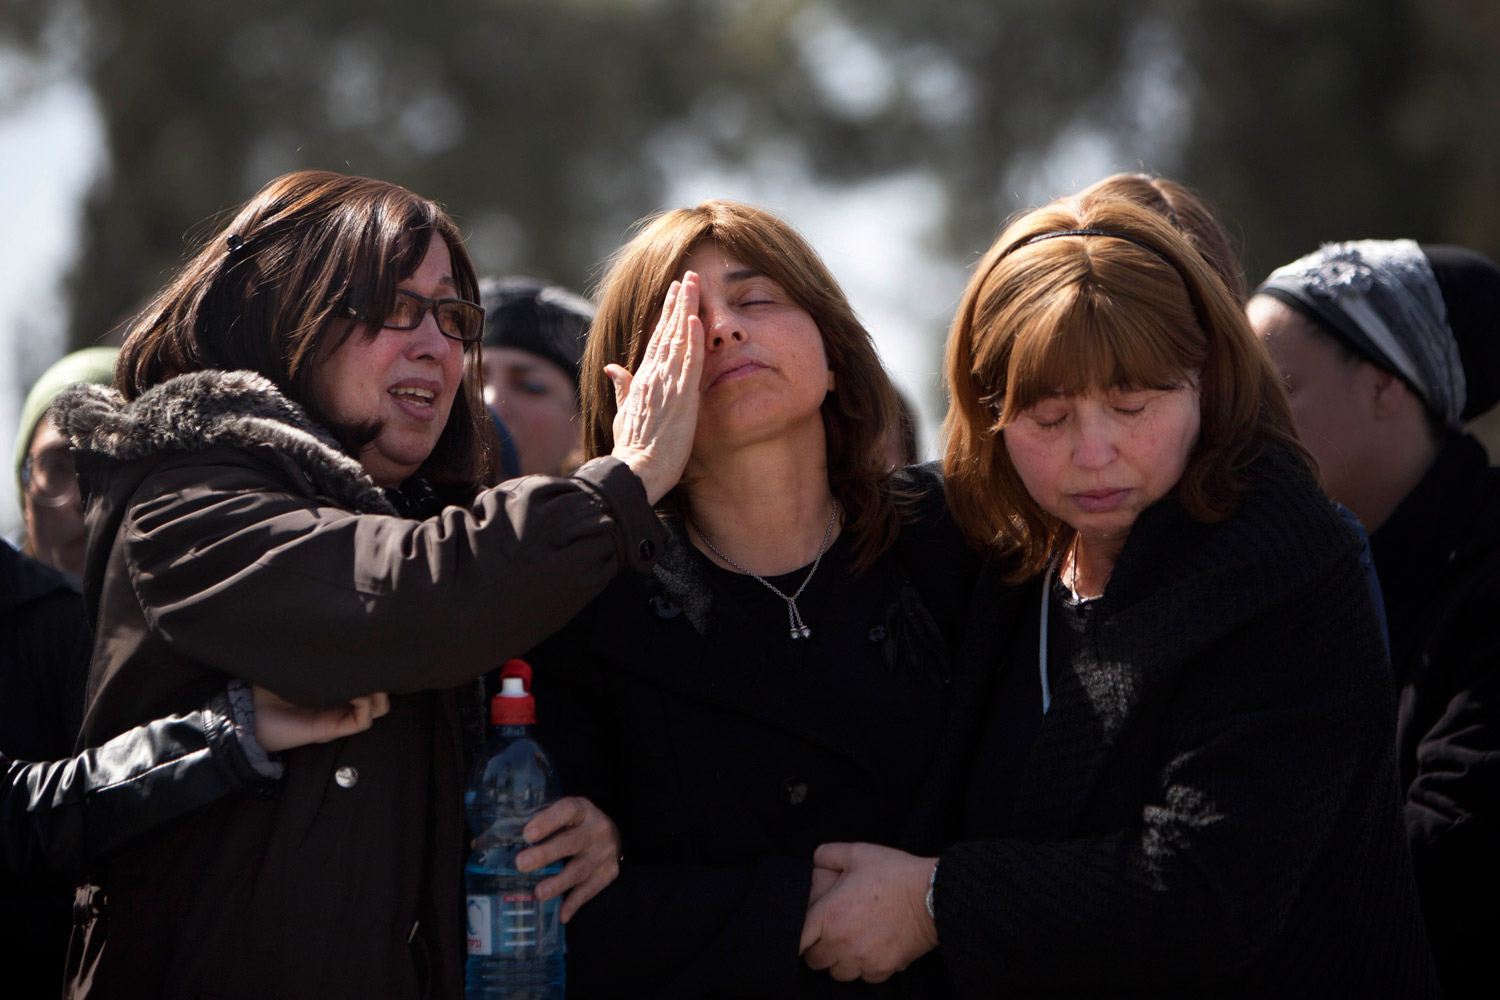 March 21, 2012. At a cemetery in Jerusalem, family members react during a funeral for the victims of a school shooting in Toulouse, France.